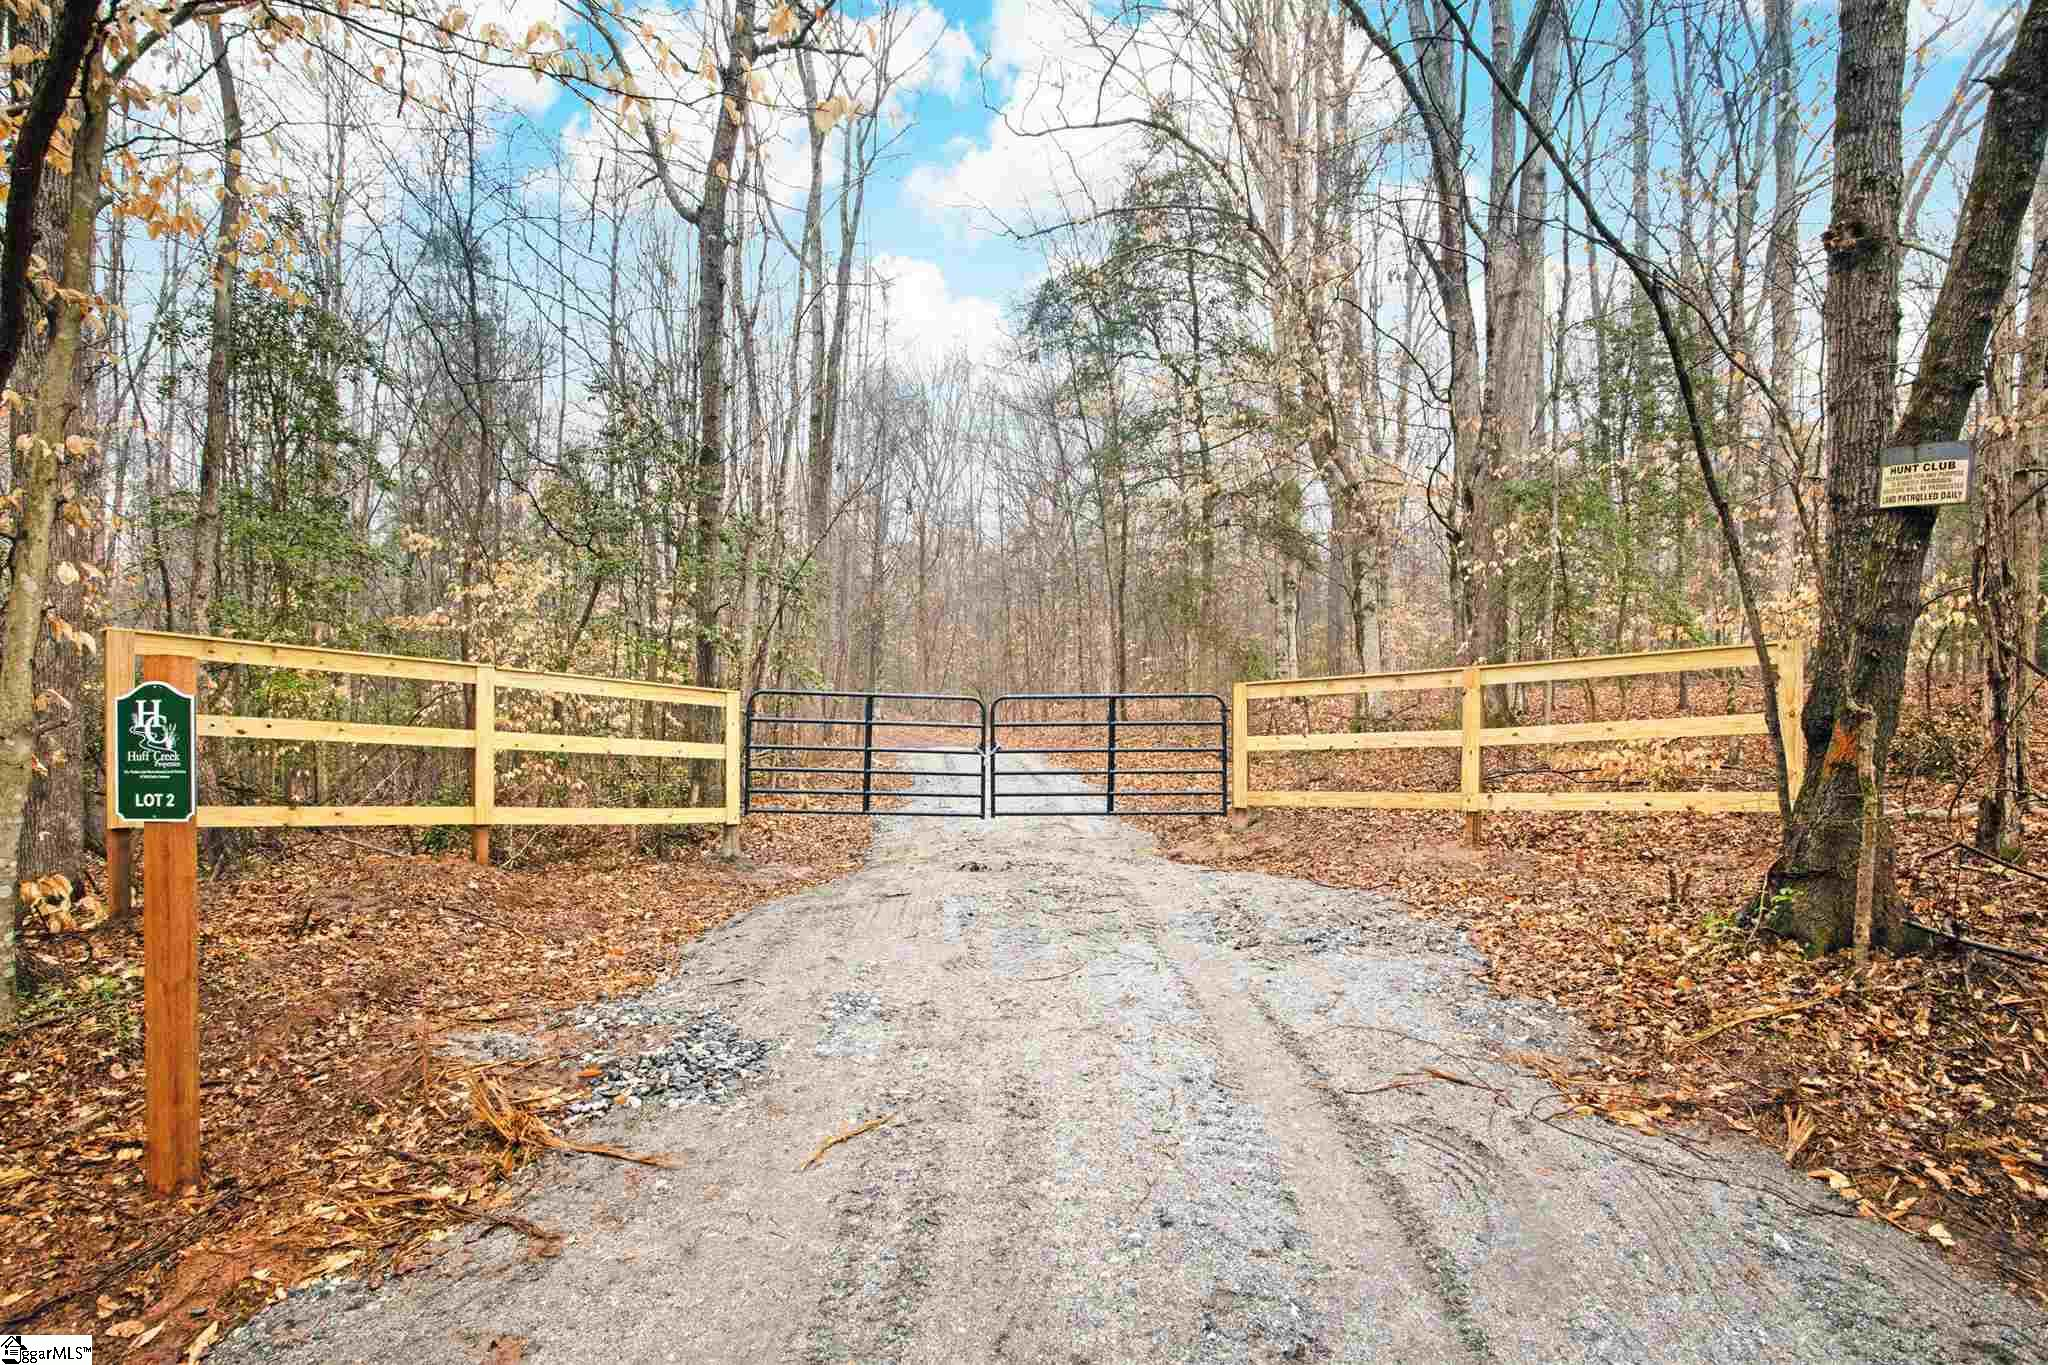 Chumley Road Extension Woodruff, SC 29388